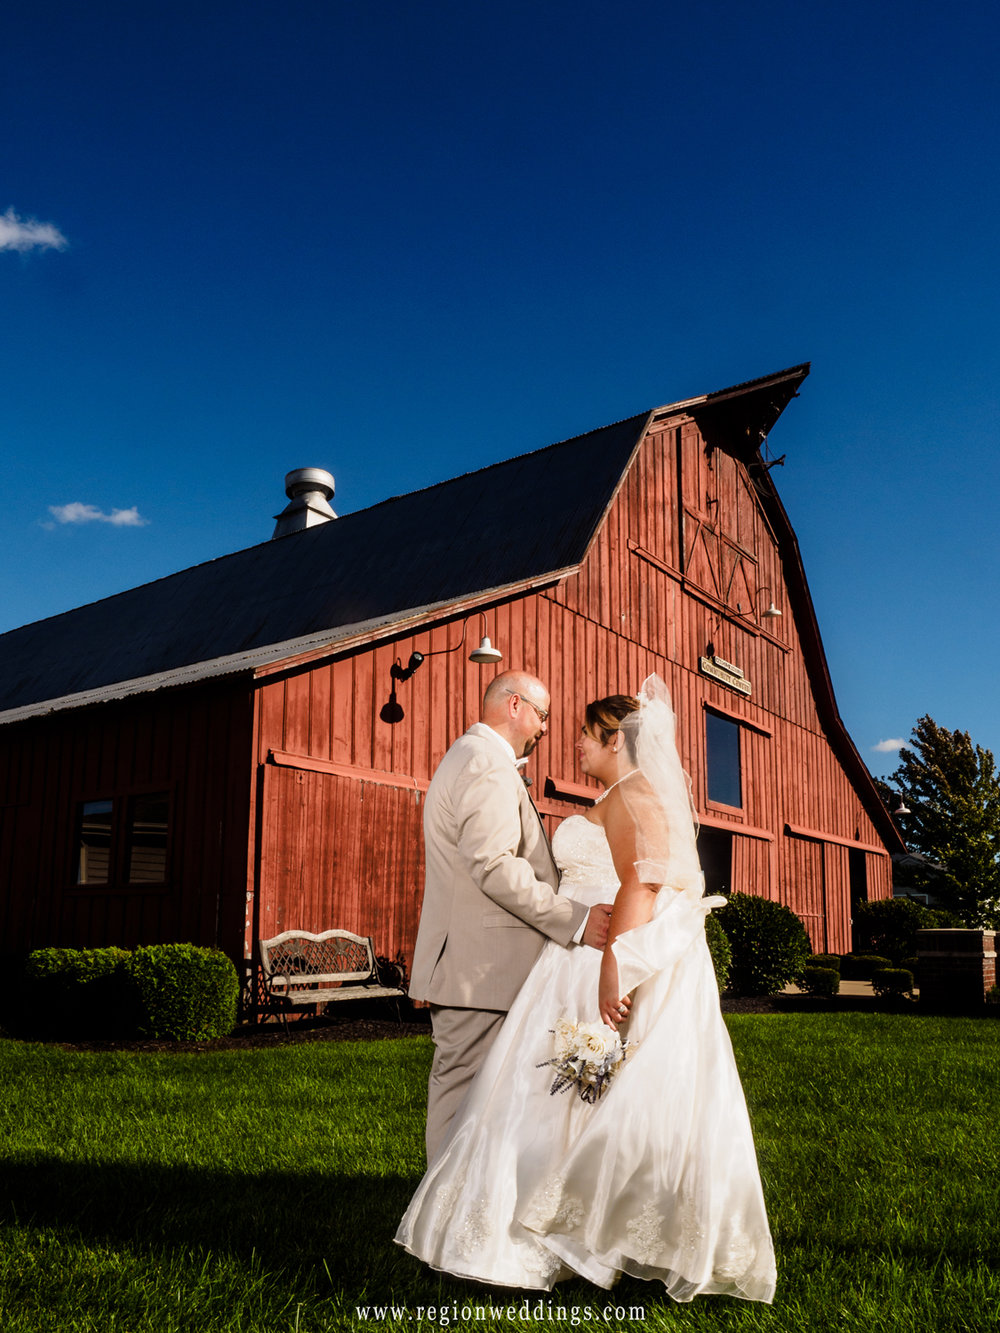 Bride and groom at their rustic barn wedding.